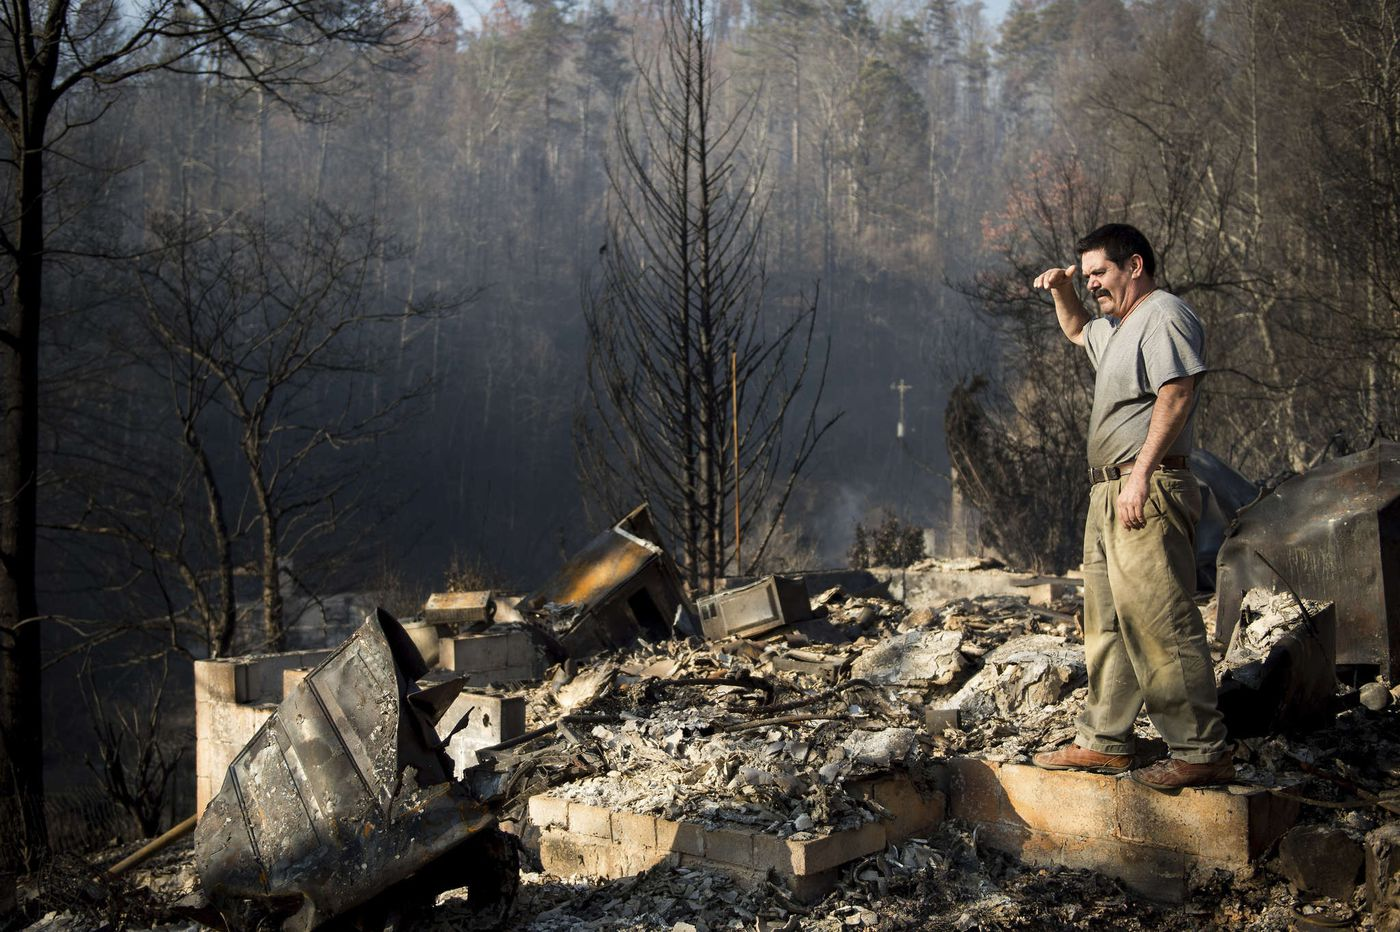 Thousands flee as deadly flames engulf resort towns